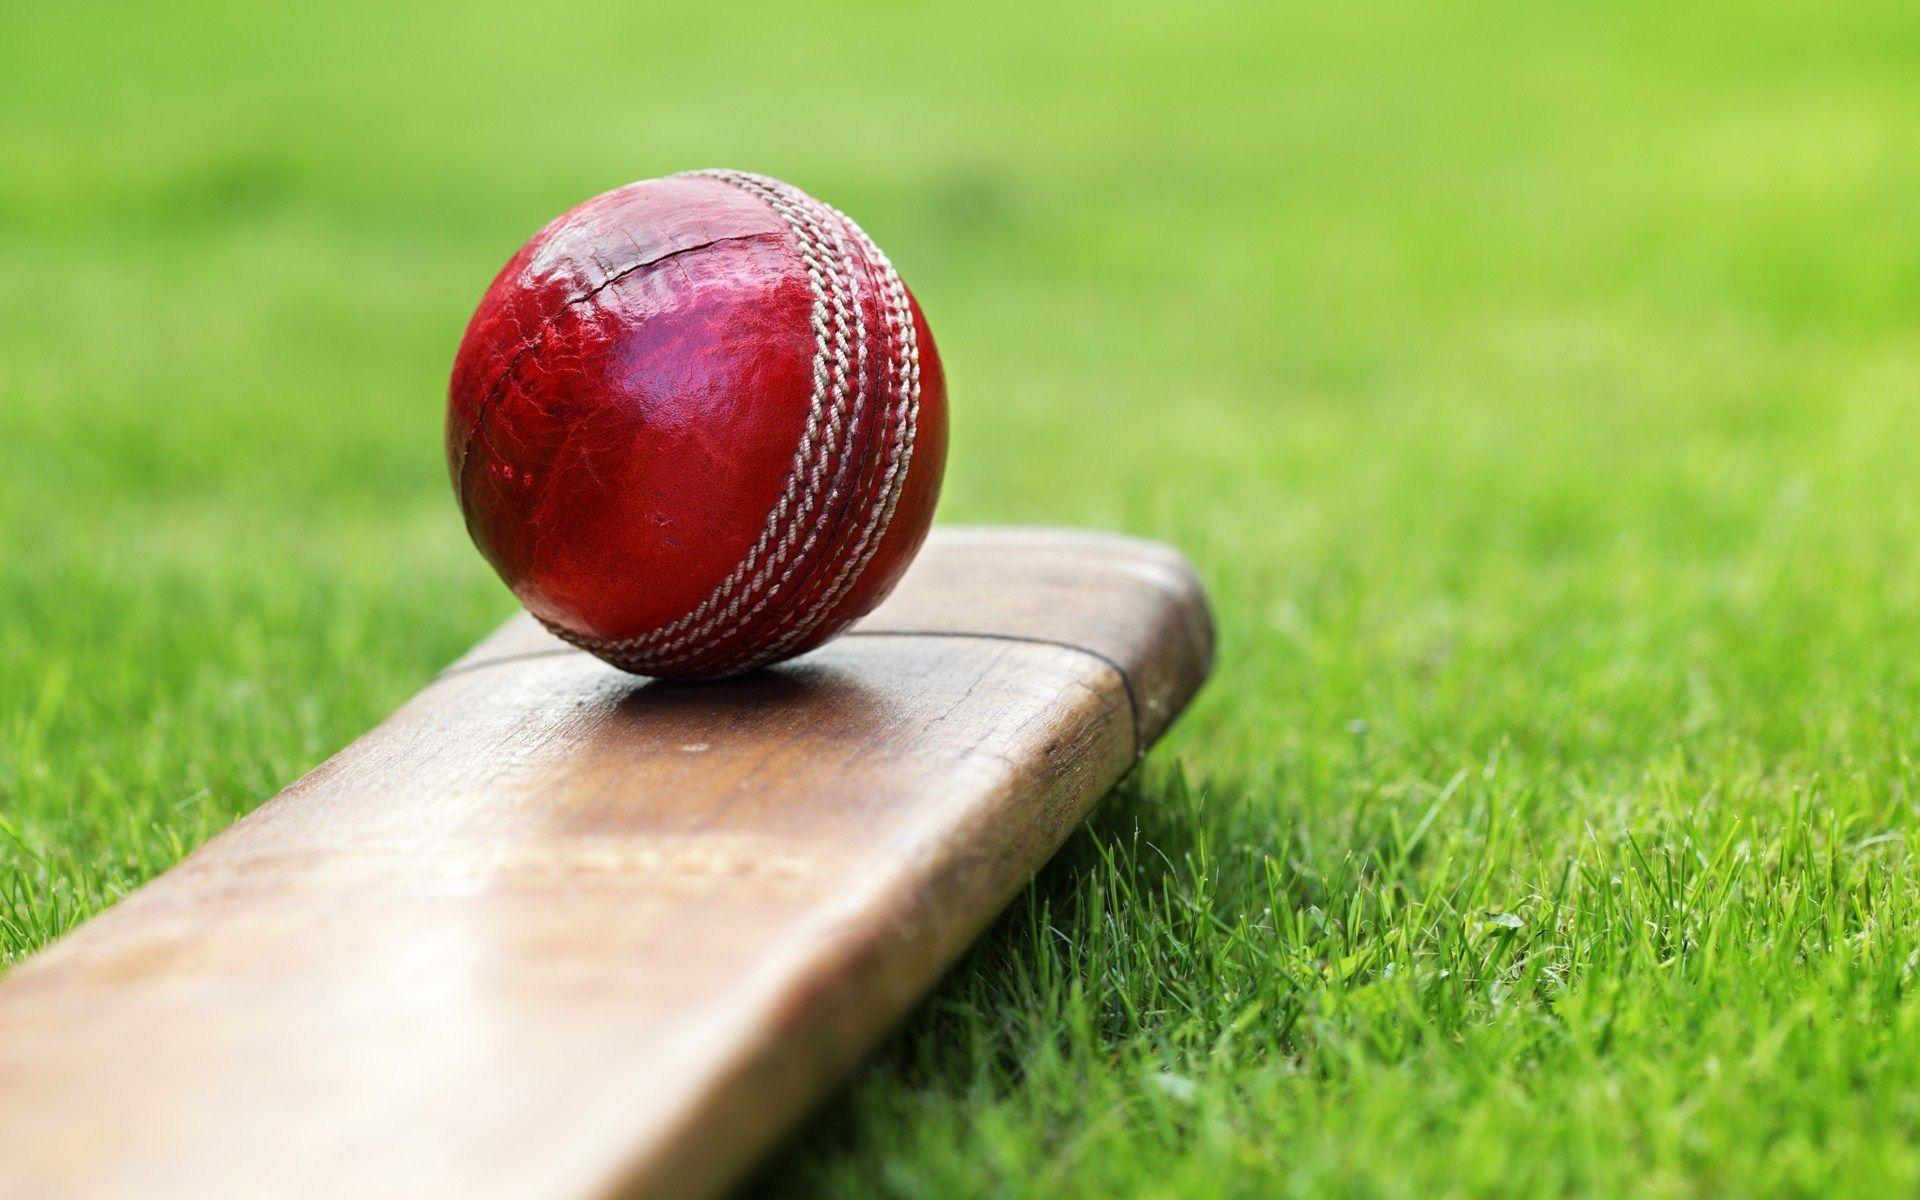 Cricket bat and ball #picture - HD Wallpapers